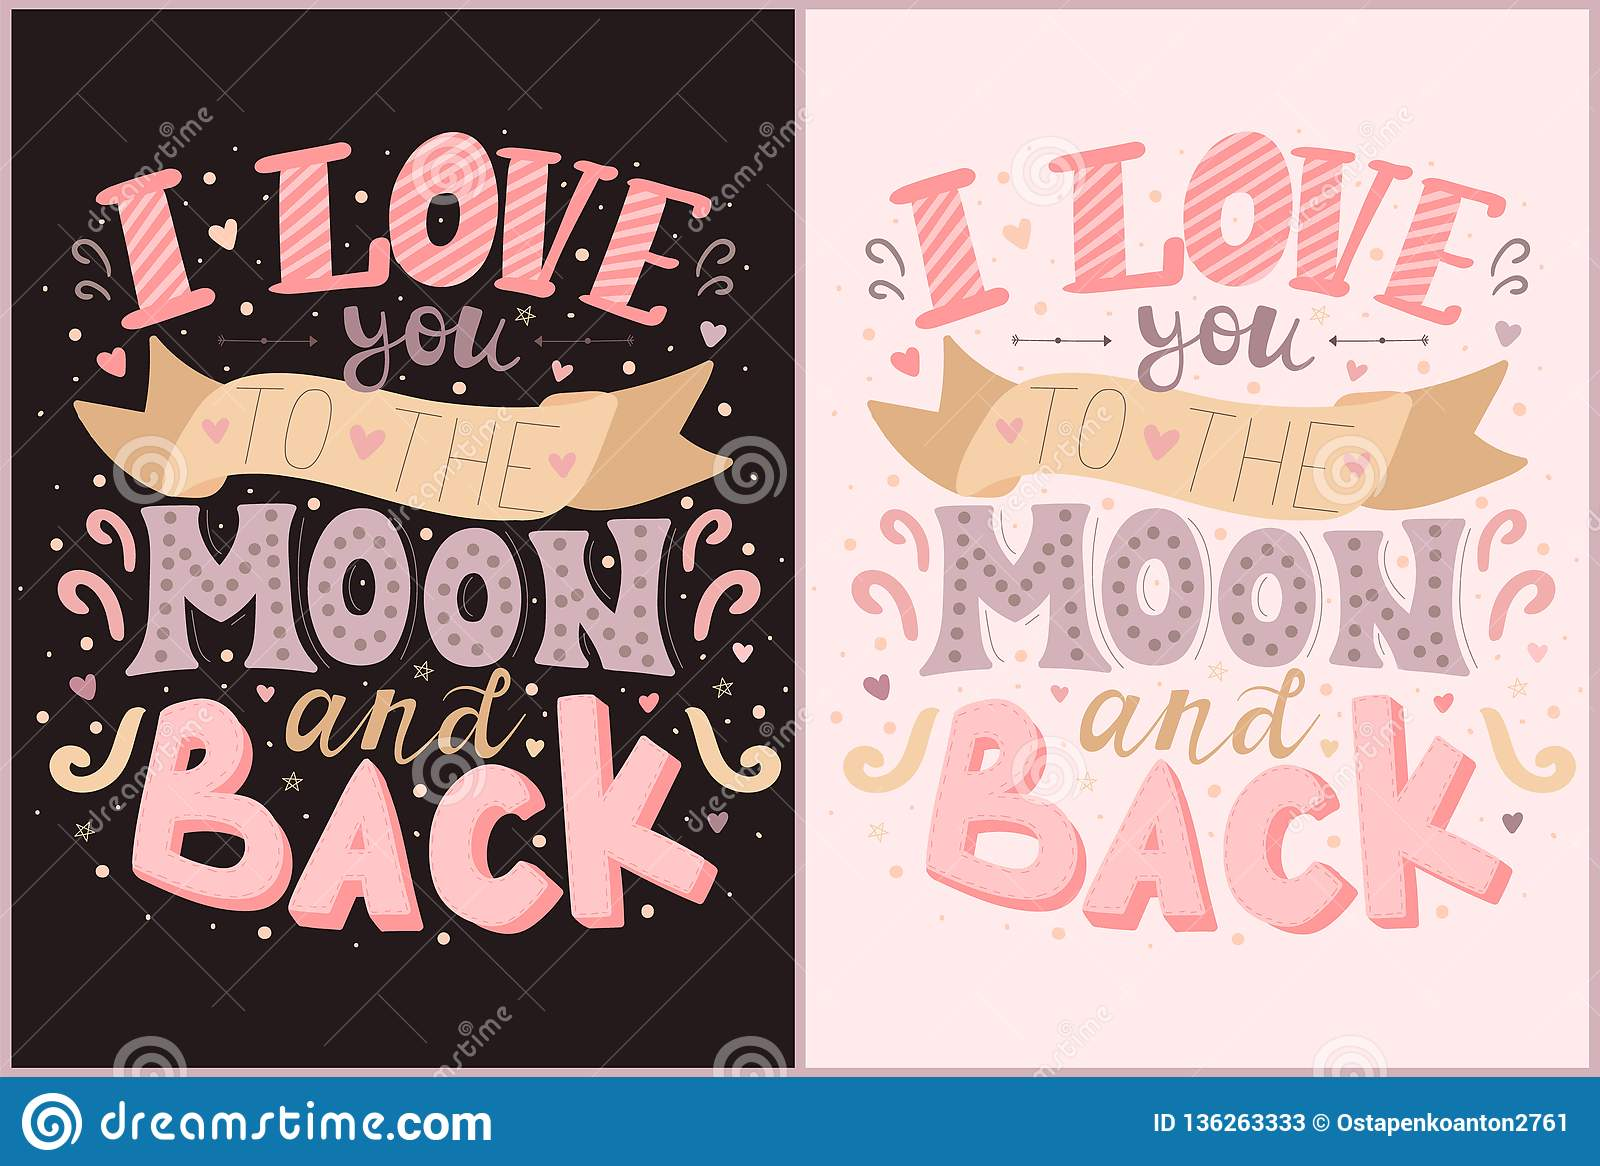 Vector inscriptions I love you to the moon and back in pink and purple colors. Illustration on the dark and light backgrounds for